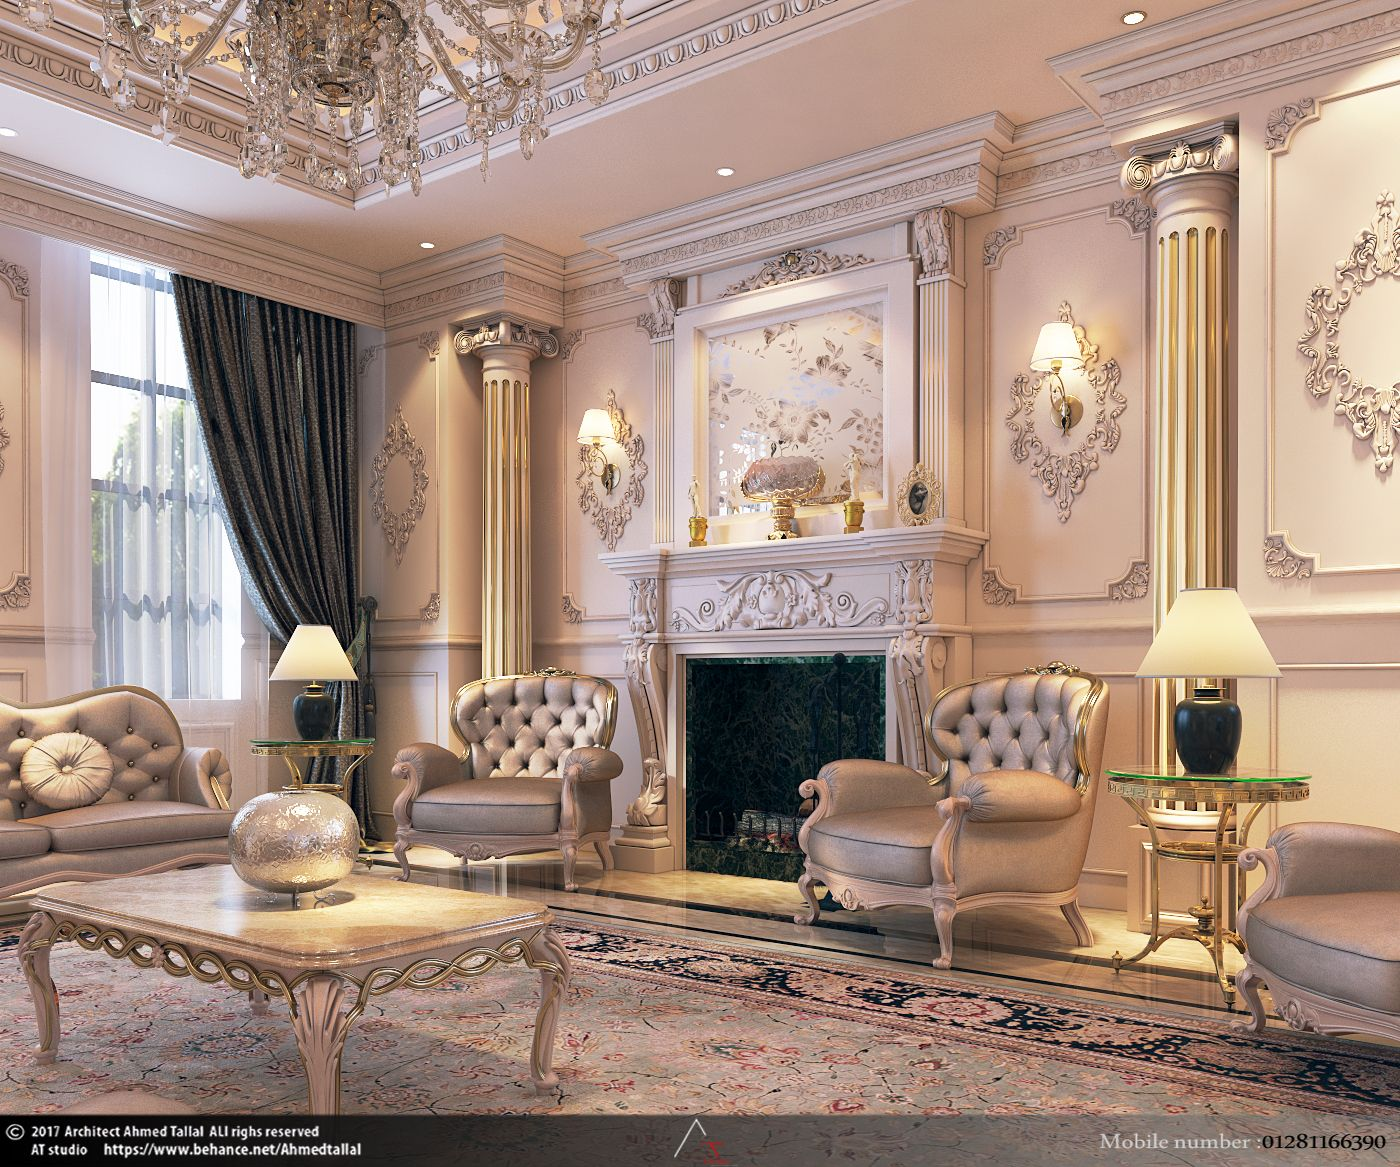 Luxury Classic Living Rooms: In The Heart Of The Maison